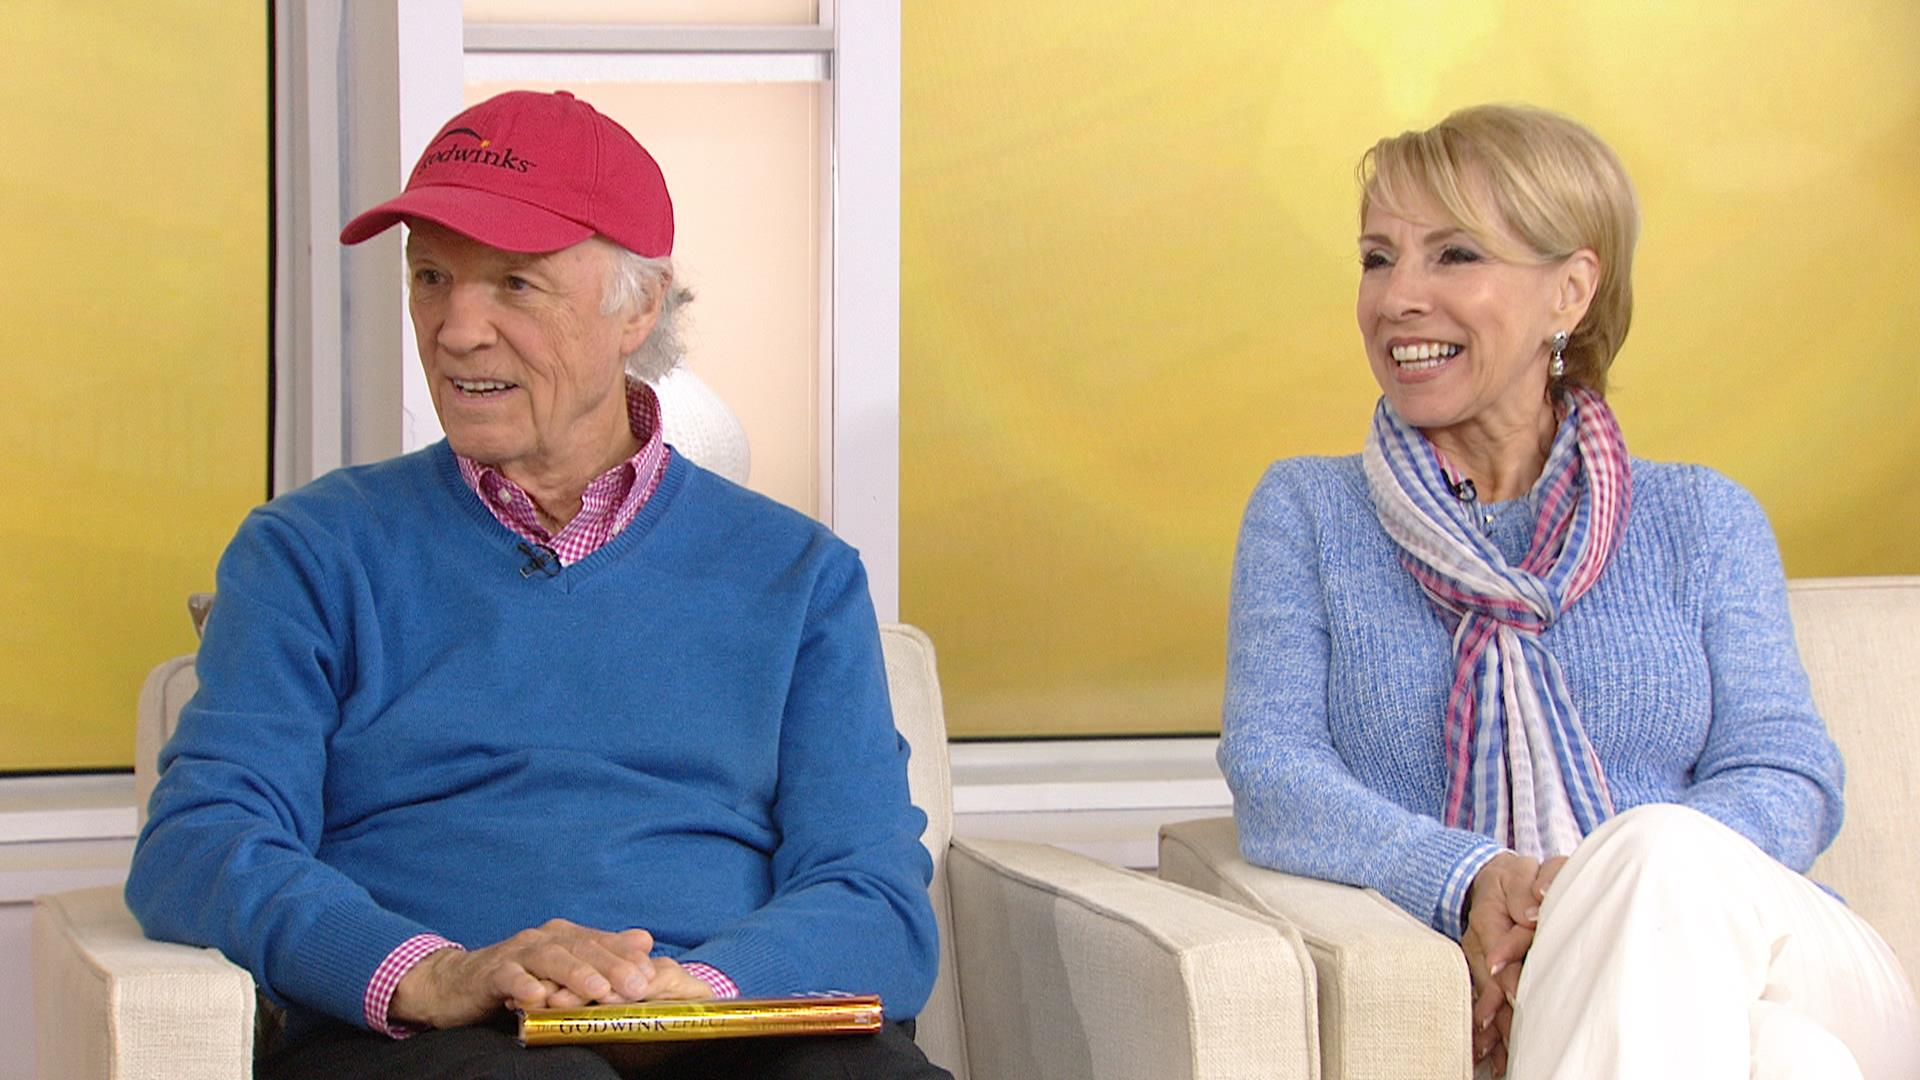 'Godwinks' will now be a TV-movie series featuring Kathie Lee Gifford - NBC News